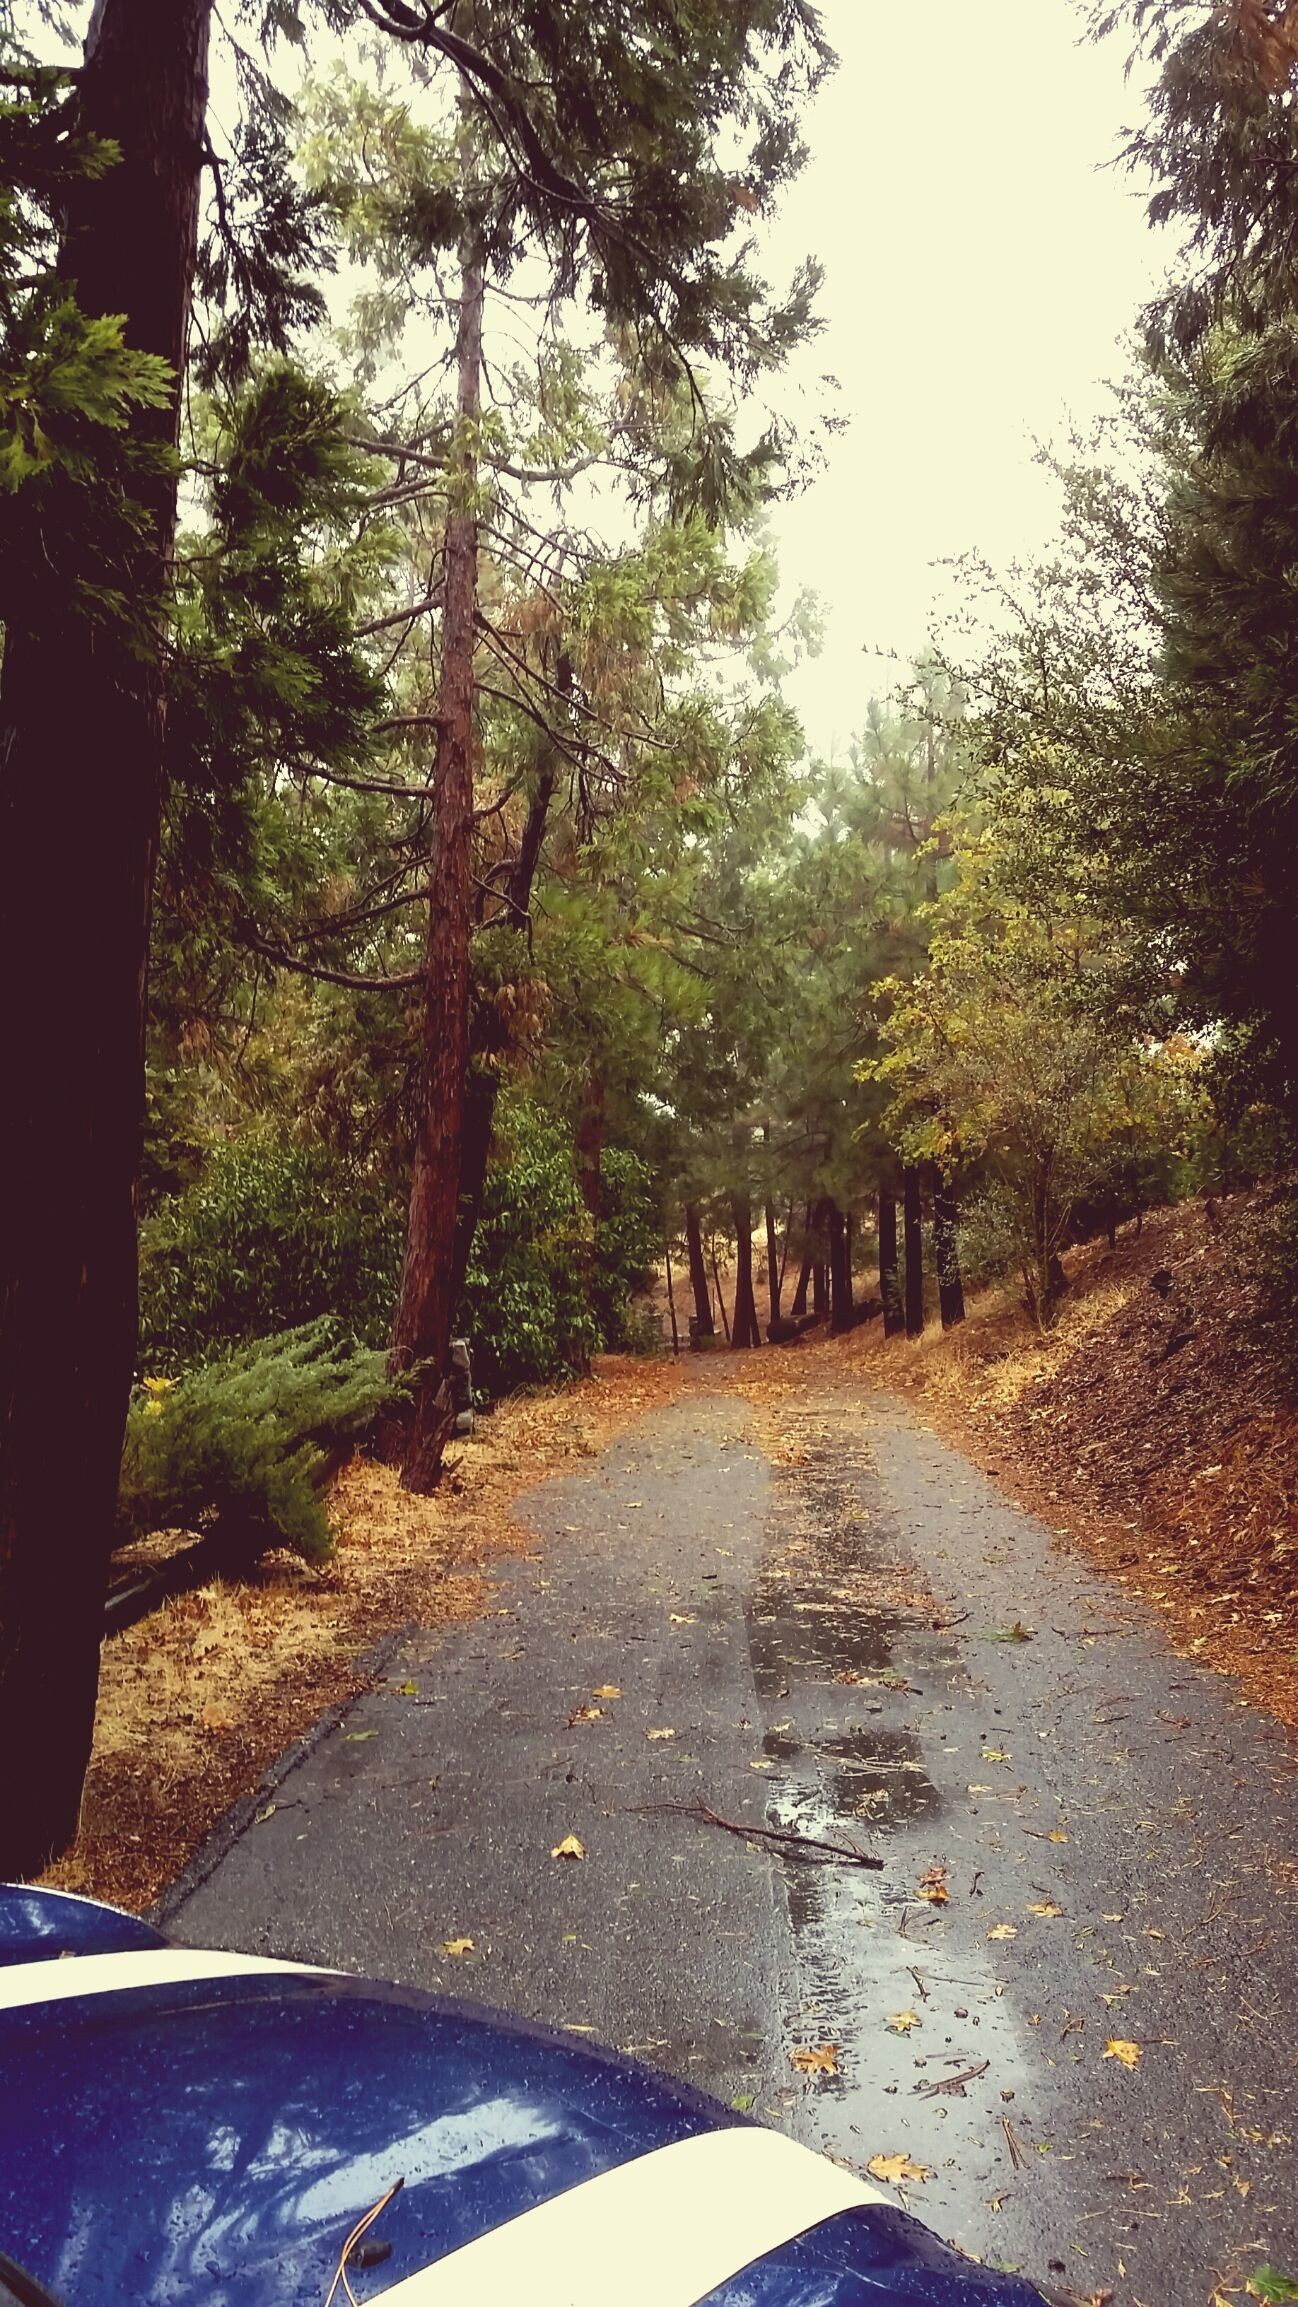 // taken by me in Lake Arrowhead //